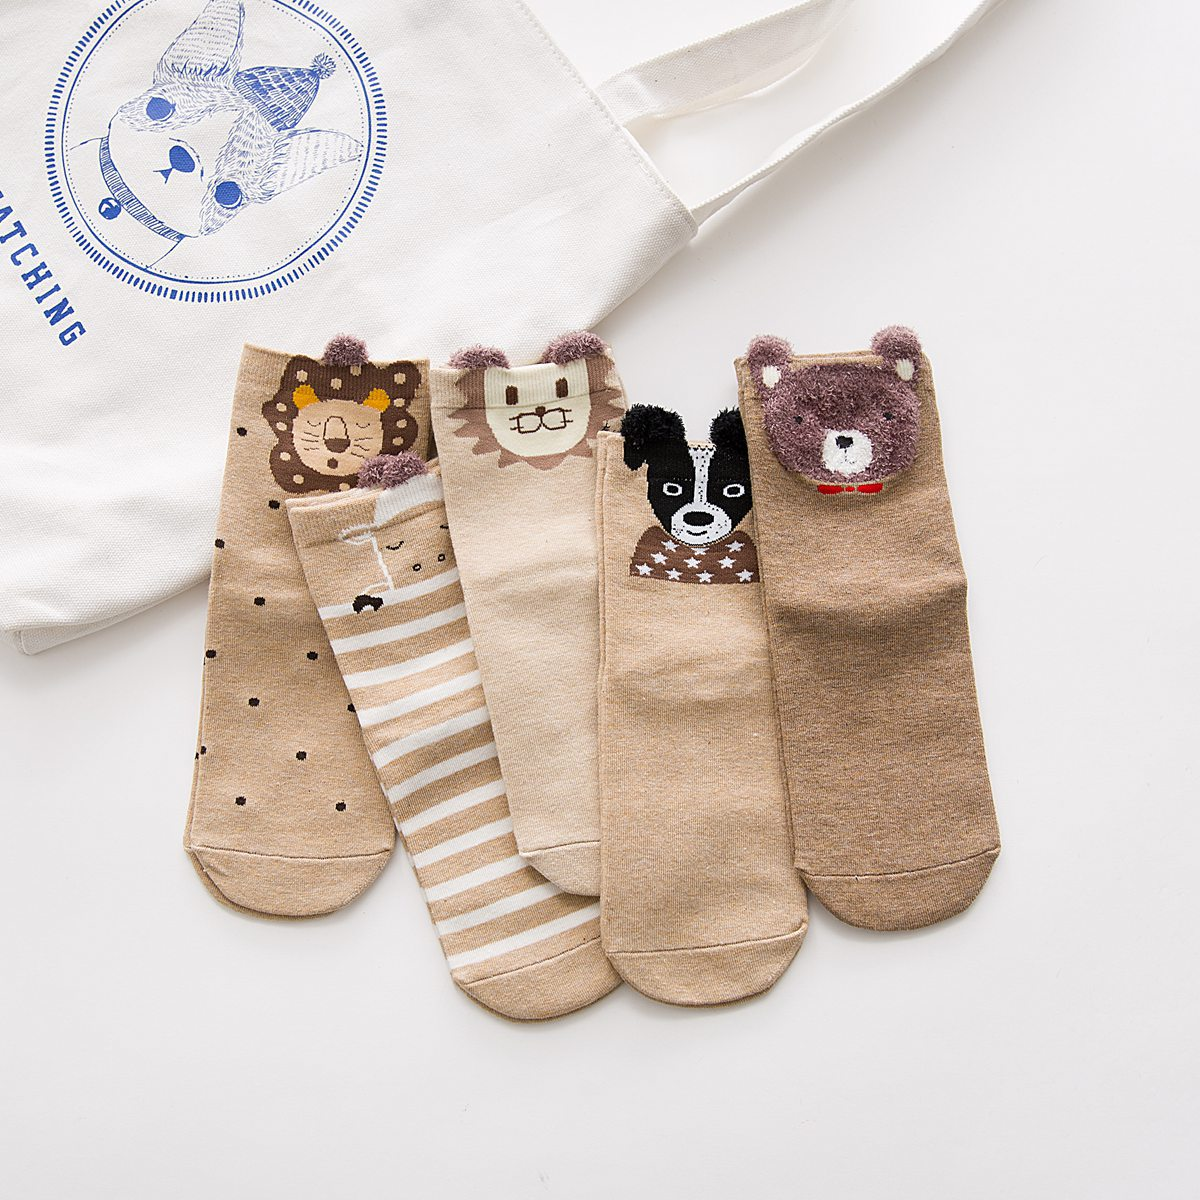 Japanese female socks in the tube new autumn and winter cartoon socks ladies plush brand factory outlets wholesale